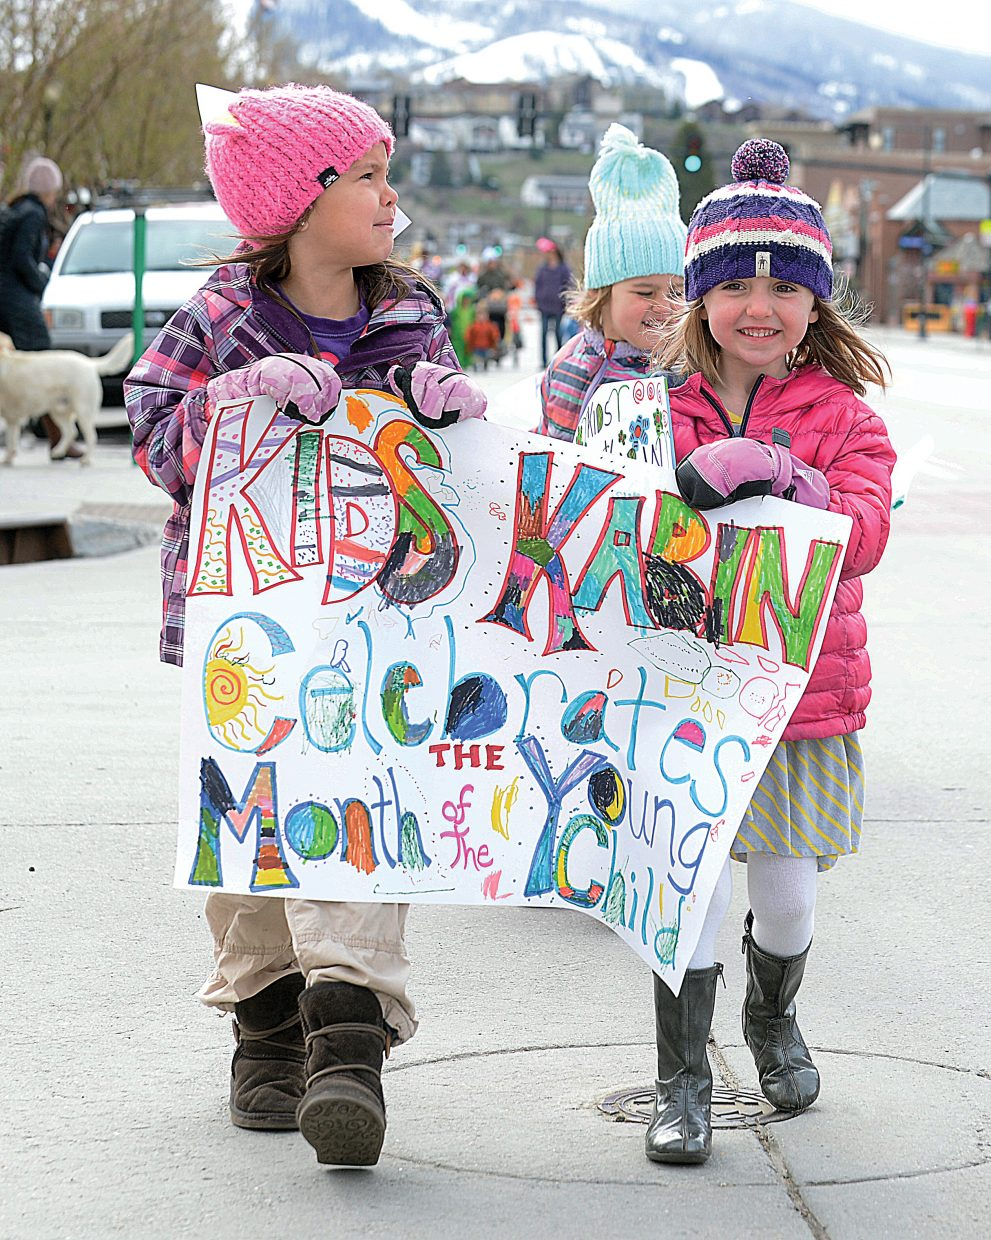 Nale Meek, left, and Gigi Lobeck carry the Kids Kabin banner down Lincoln Avenue on Wednesday morning as part of the annual Children's Parade. The parade was held as part of the Month of the Young Child celebration.